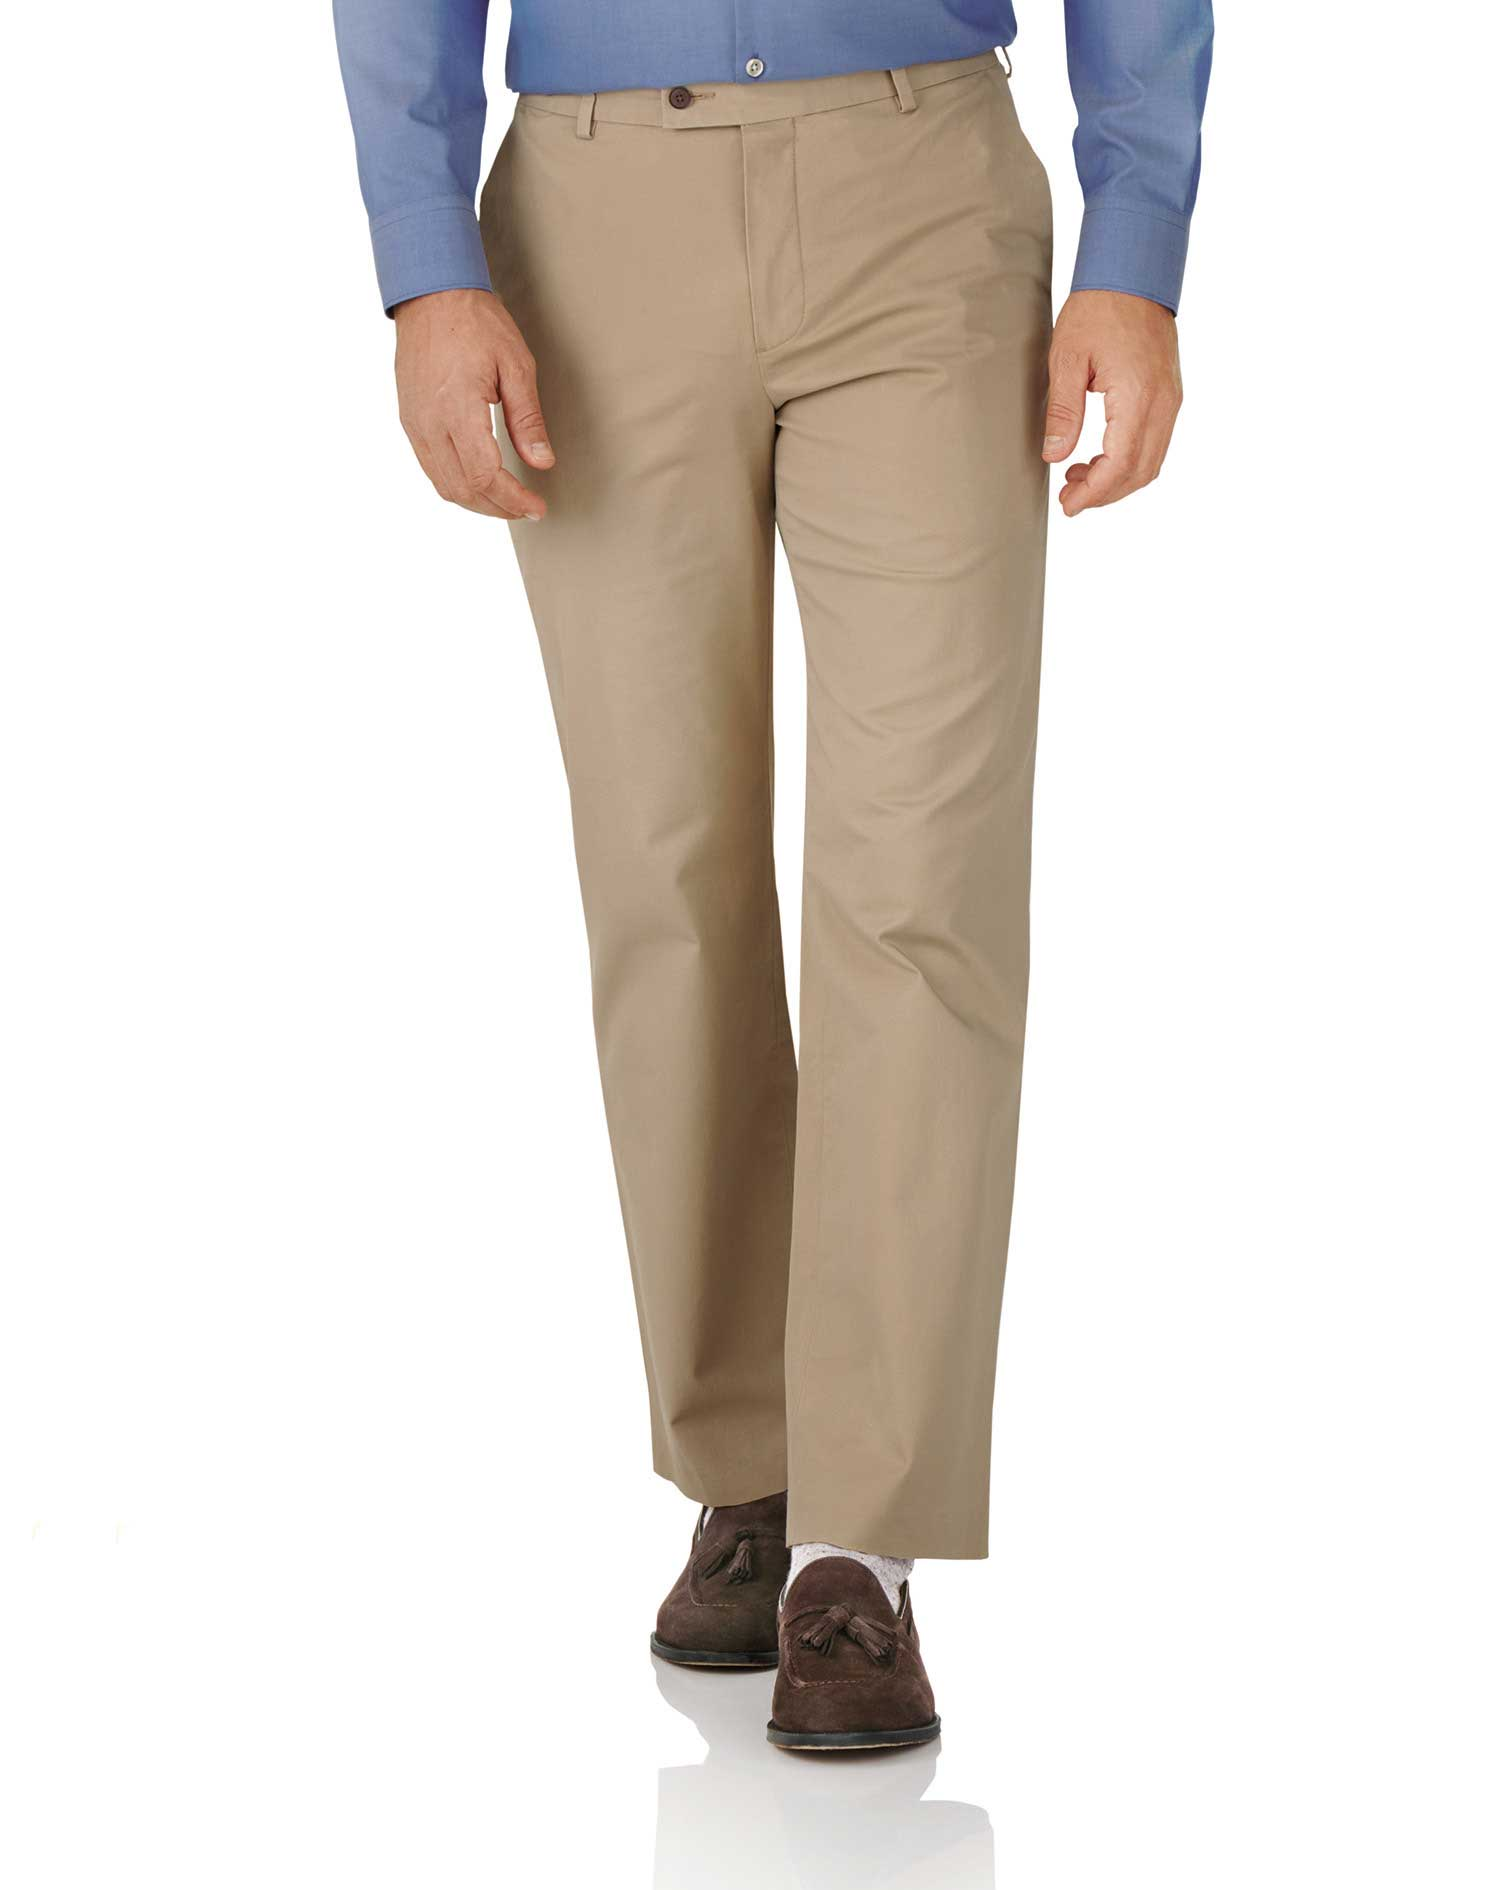 tan classic fit stretch cotton chino pants size w42 l34 by charles tyrwhitt